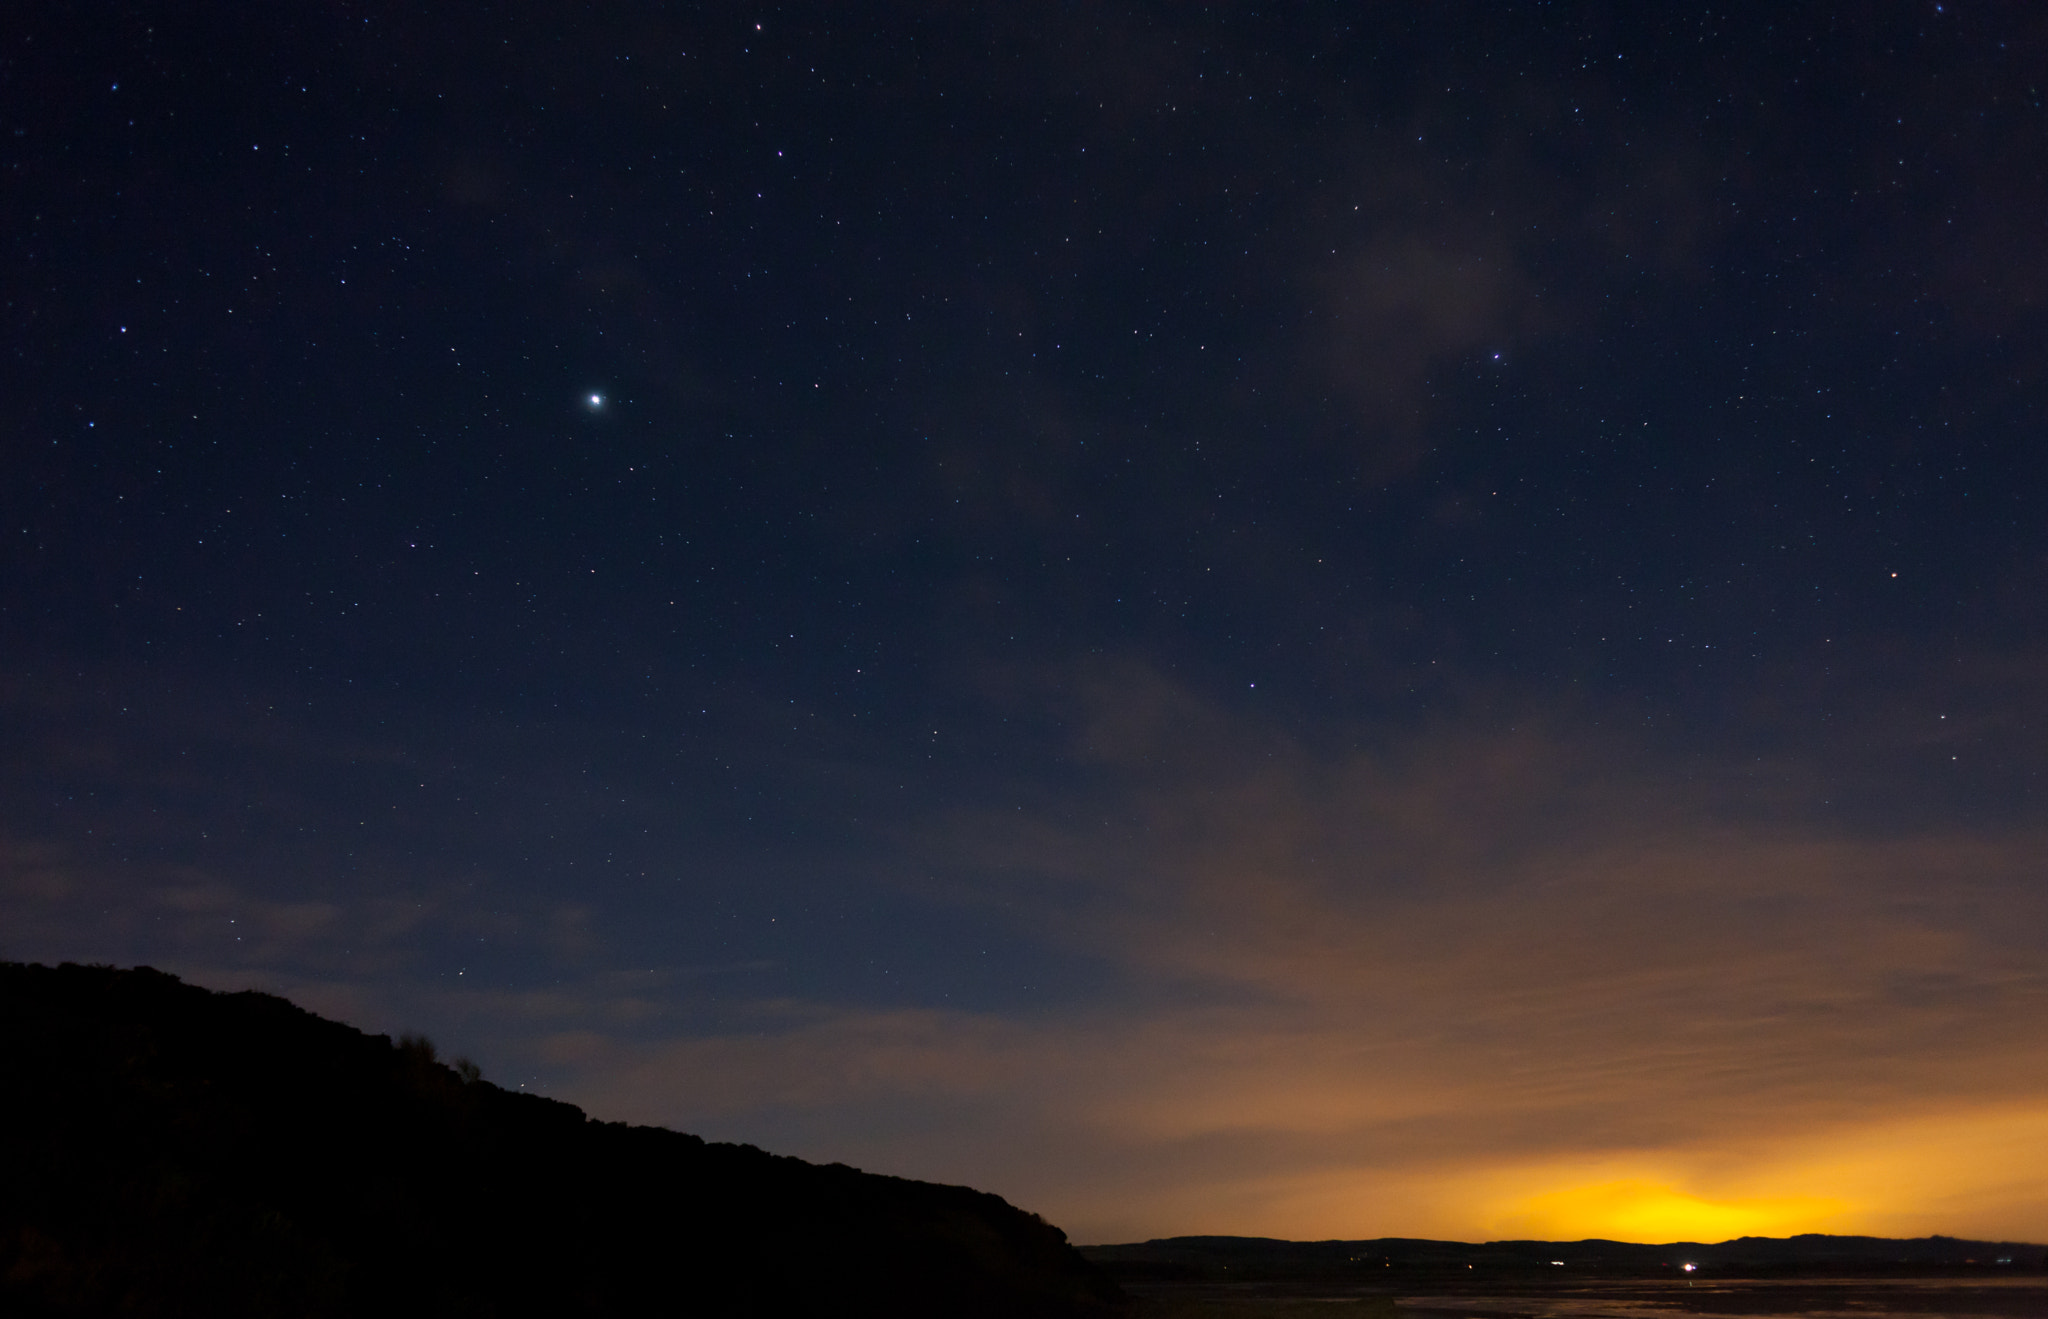 Photograph Budle Bay at Midnight by Dan Rubin on 500px